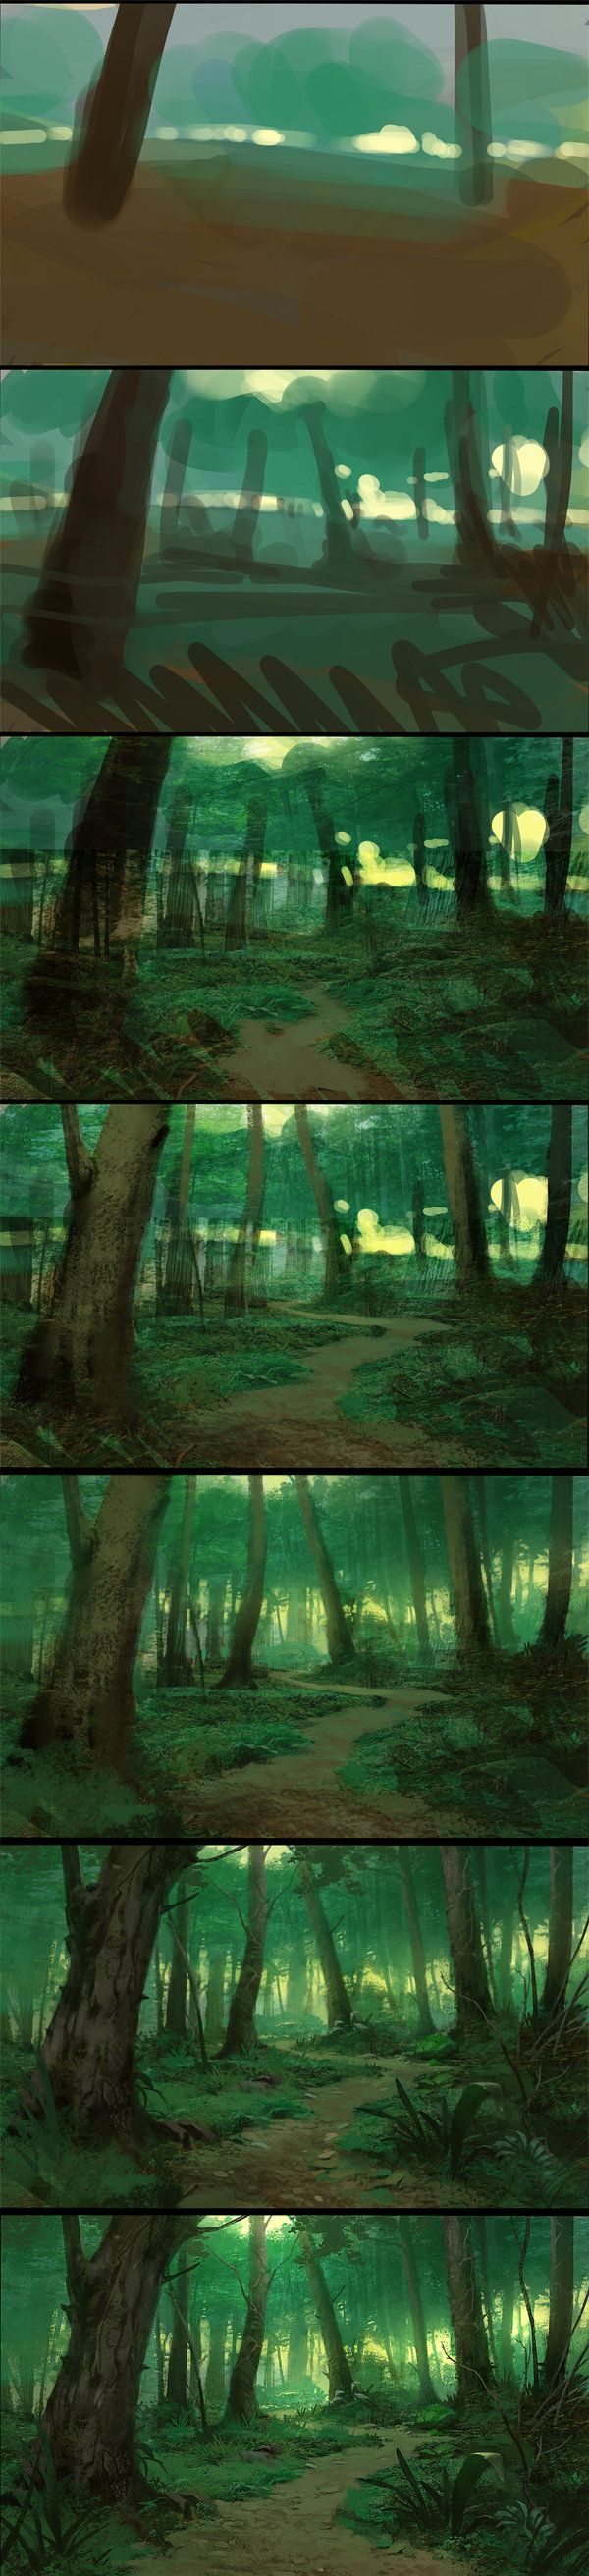 forest step by step